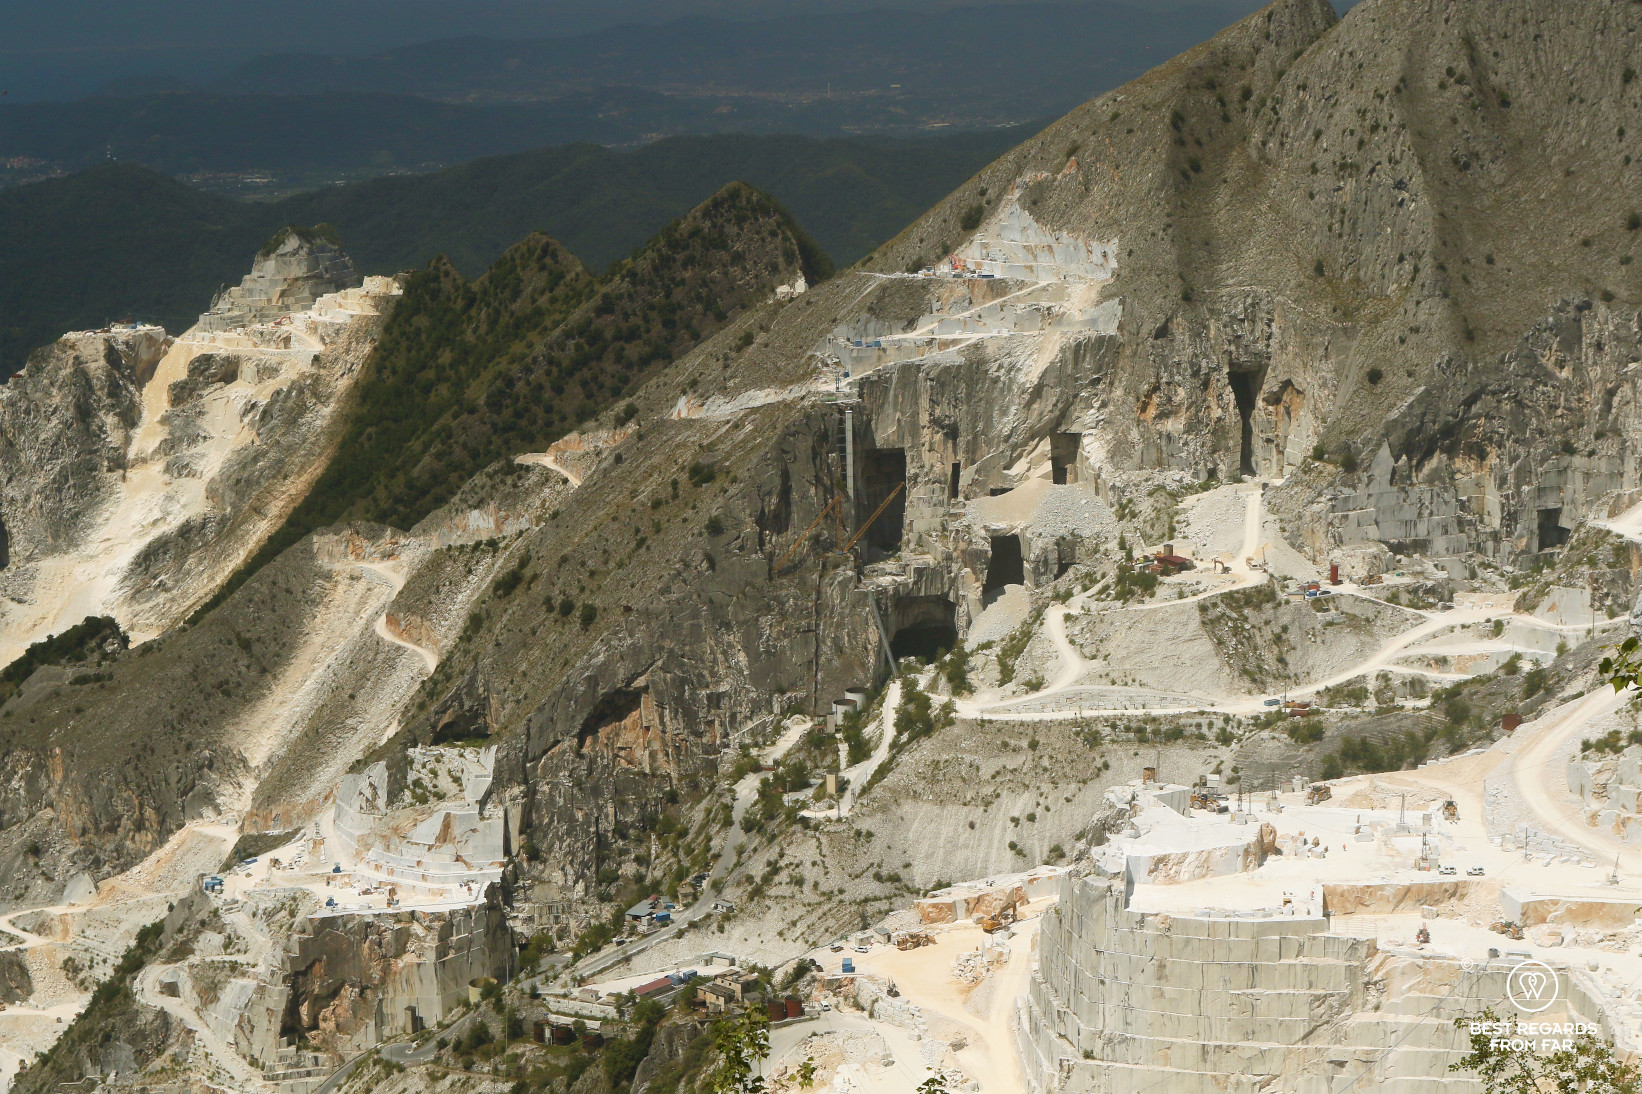 White Carrara marble quarries, Italy